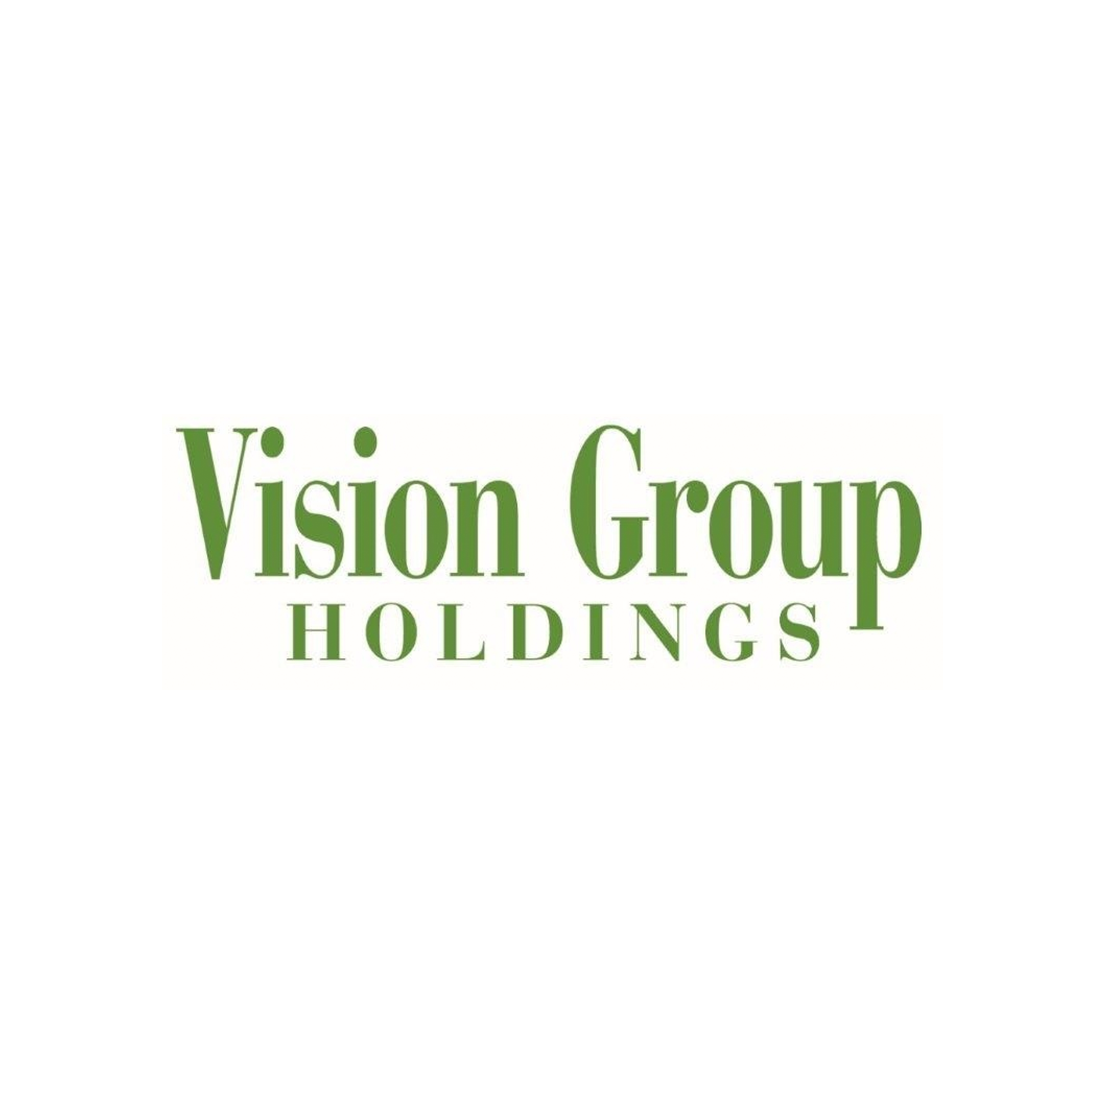 Vision Group Holdings